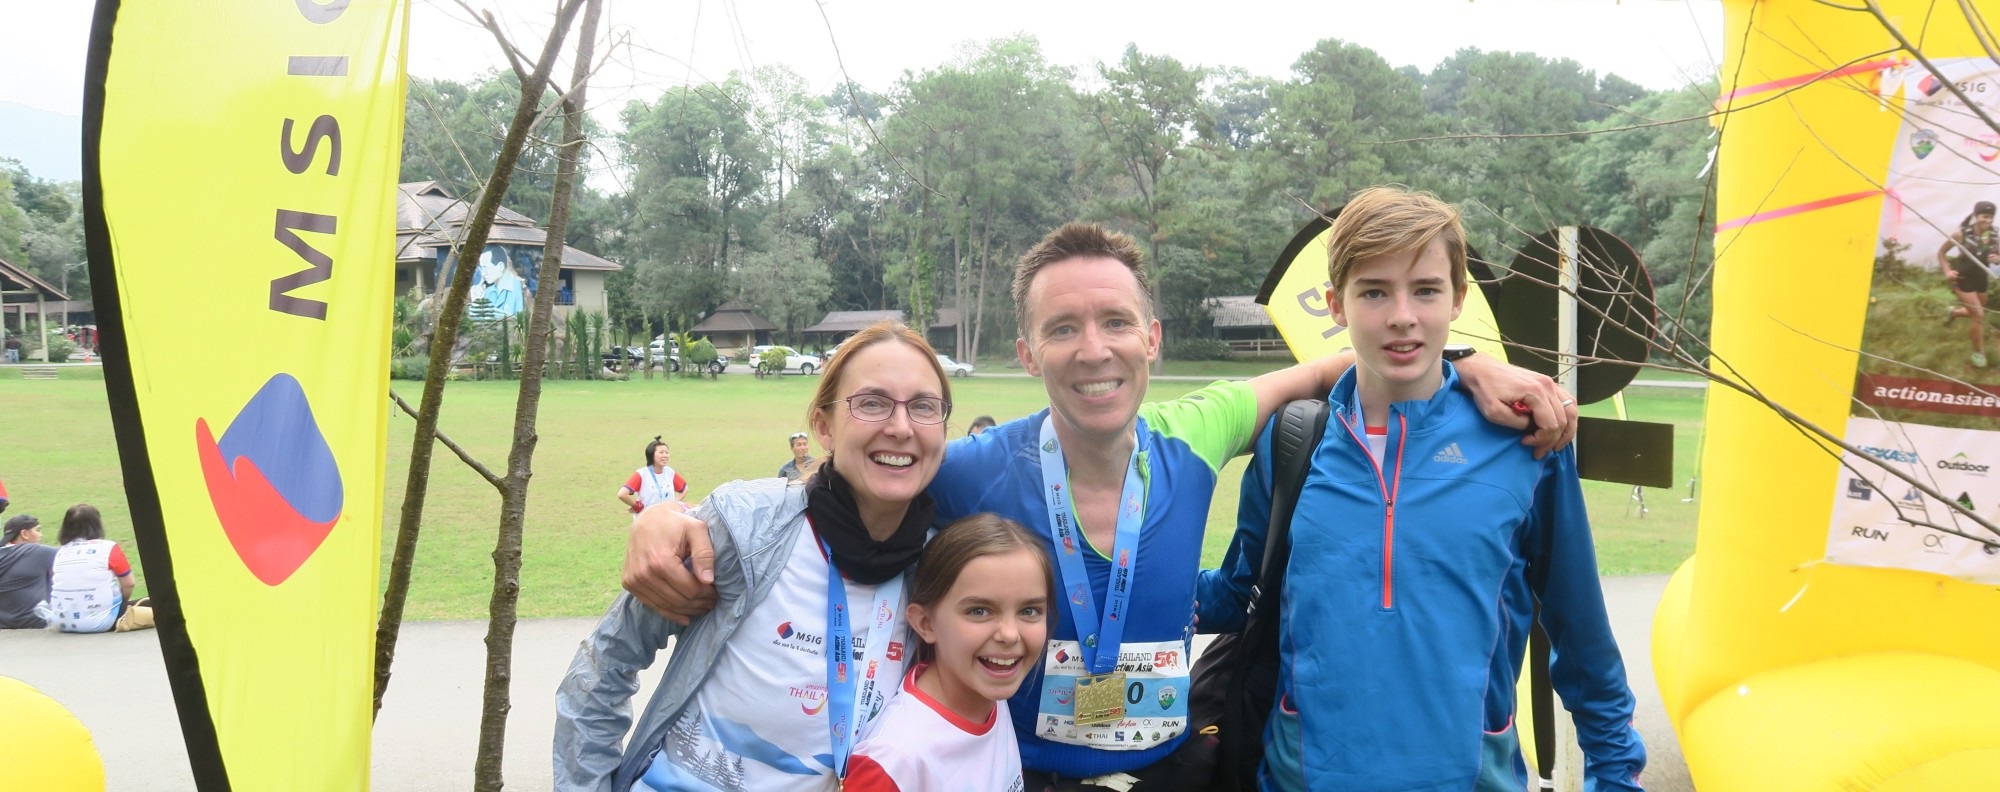 The Dingleys at the finish line in Chiang Mai in Thailand. Parents Jeana and Peter have encouraged their children to take up running to reduce time on social media. Photos: Action Asia Events